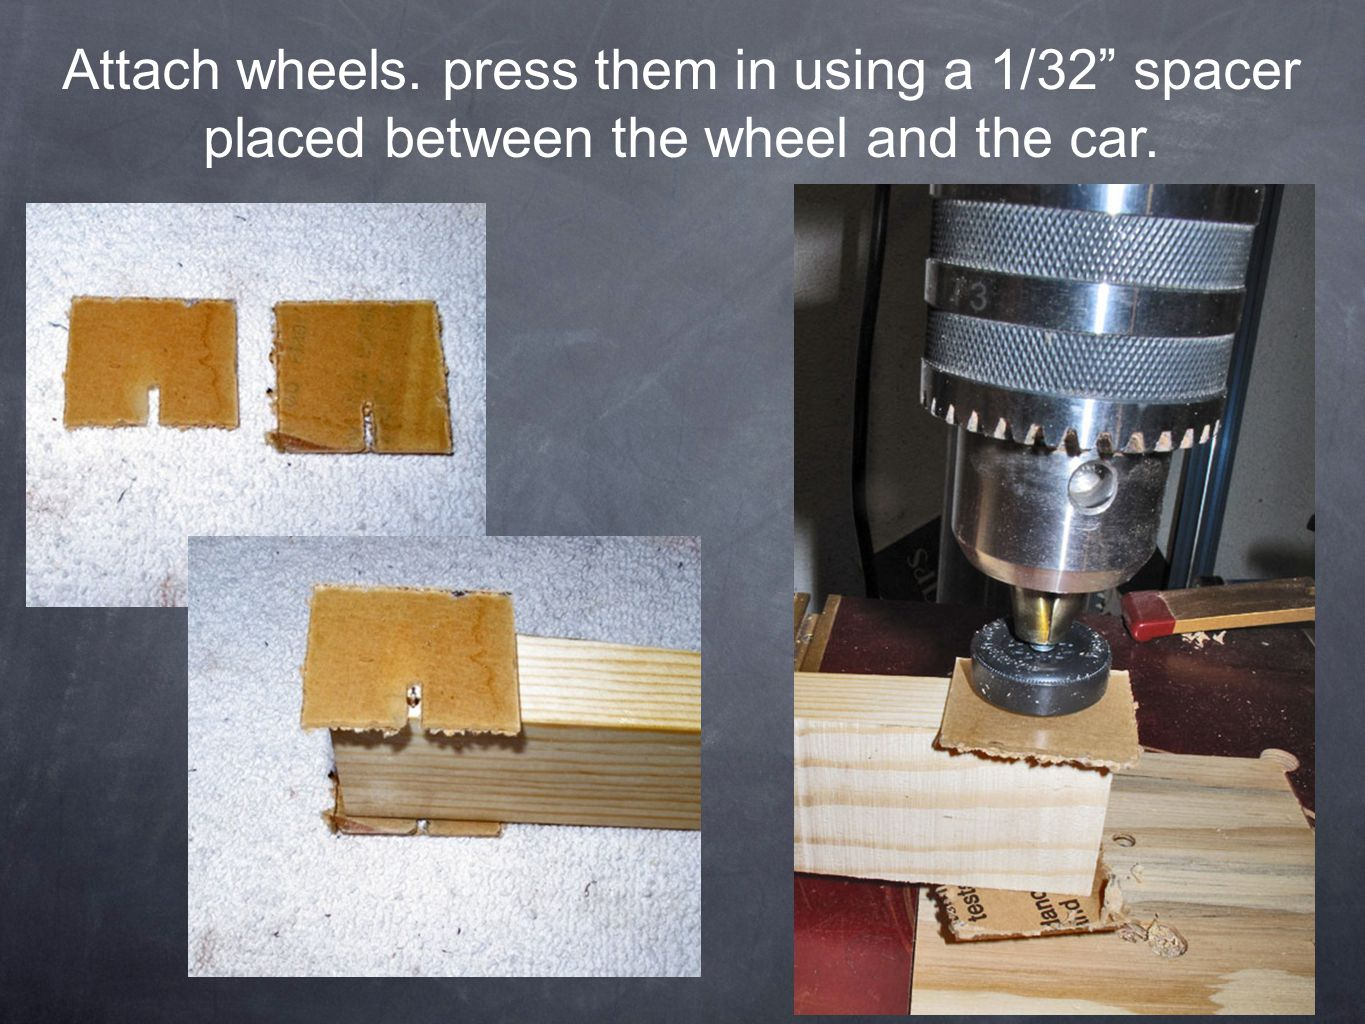 "Attach wheels. press them in using a 1/32"" spacer placed between the wheel and the car."